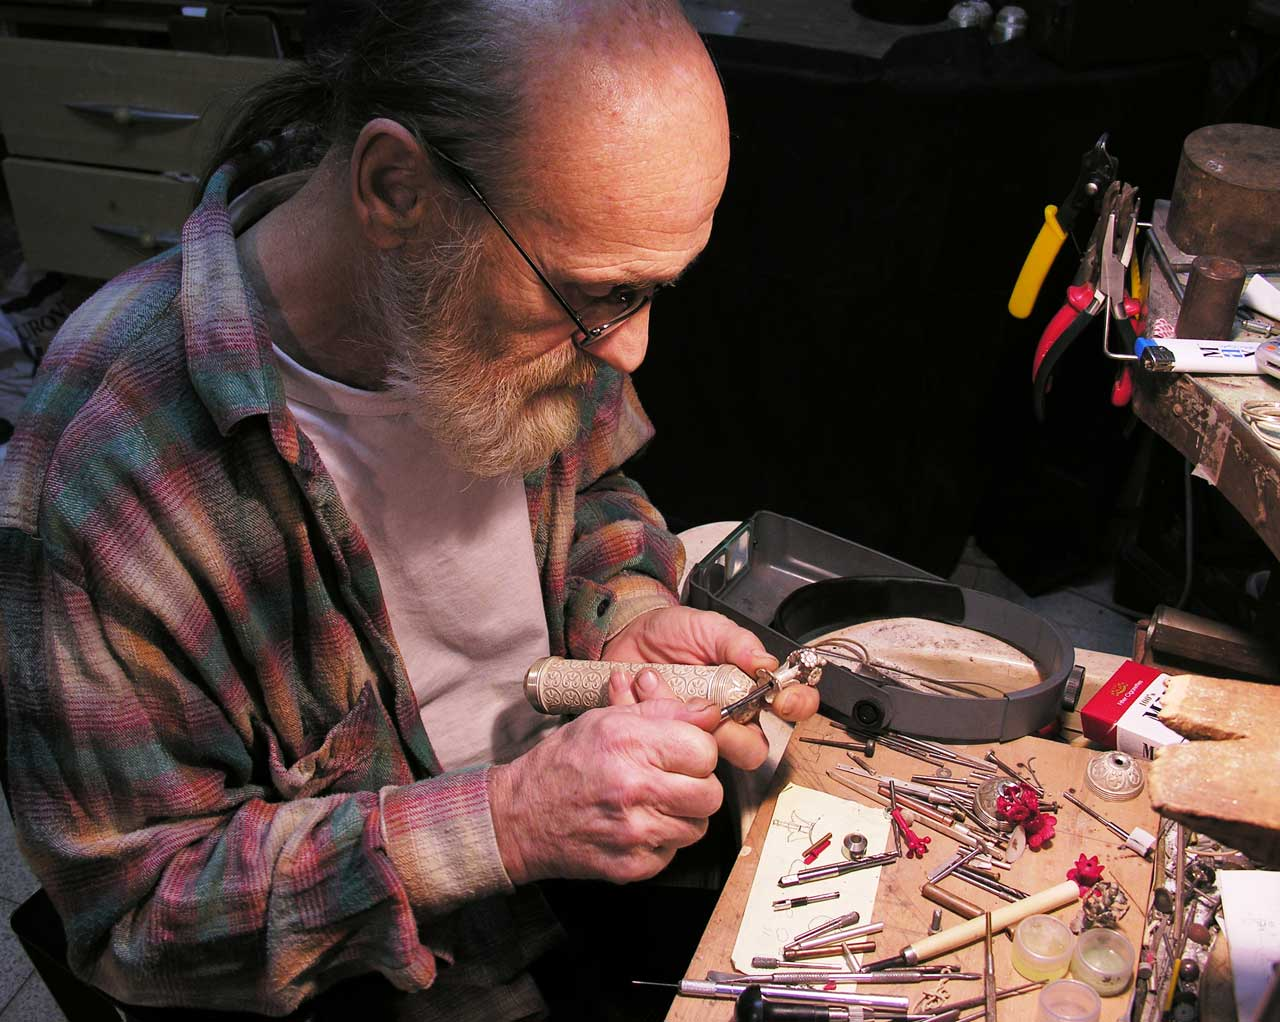 """The silversmith at work <small><a href=""""https://www.facsimile-editions.com/copyright/"""">© Copyright 2021 Facsimile Editions Ltd</a></small>"""